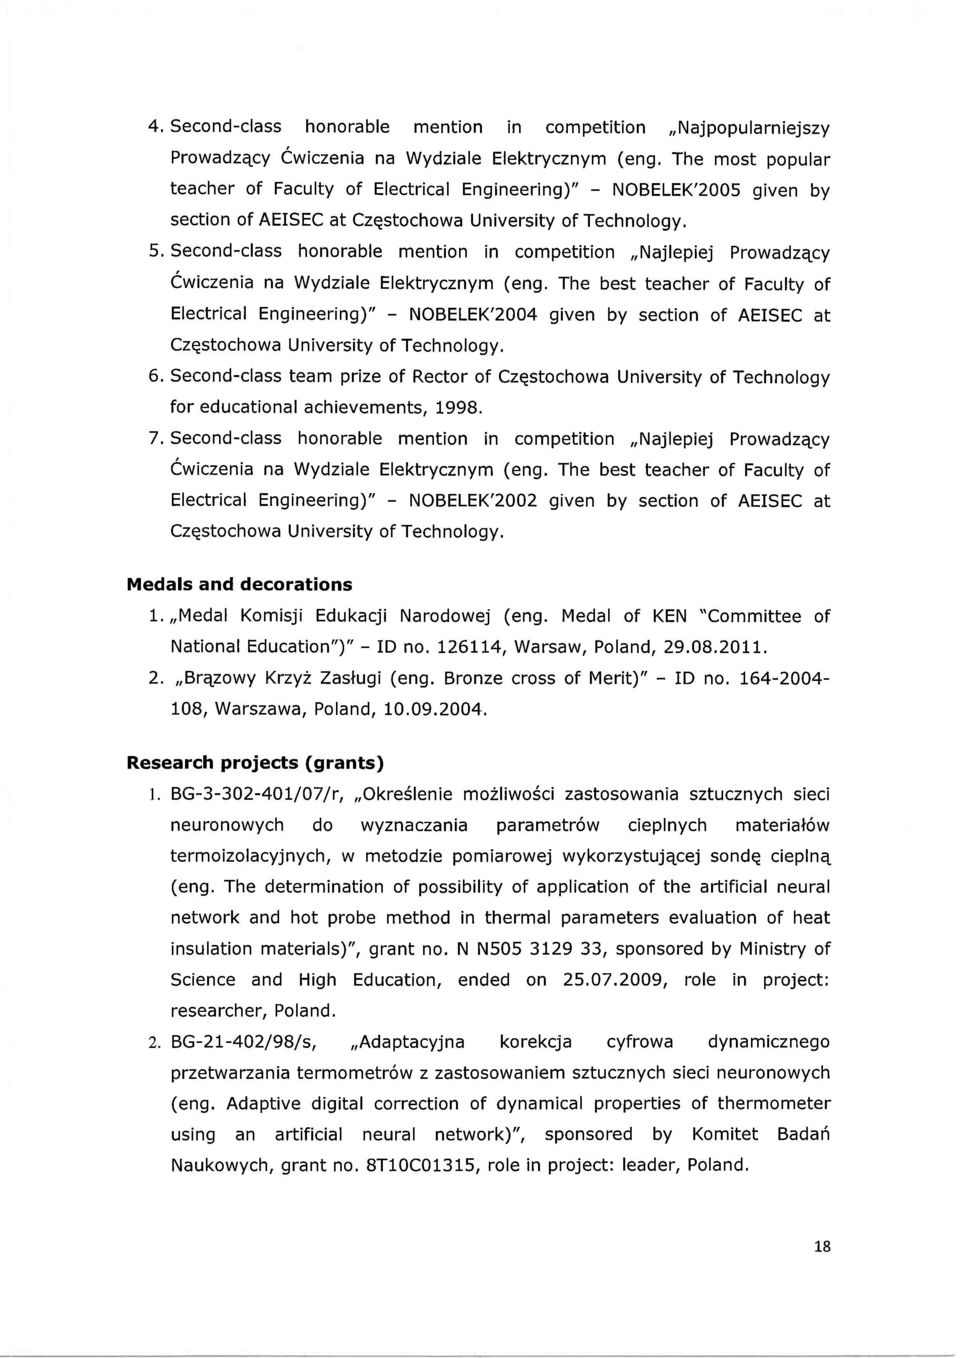 "The best teacher of Faculty of Electrical Engineering)"" - NOBELEK'2004 given by section of AEISEC at Czqstochowa University of Technology, 6, Second-class team prize of Rector of Czqstochowa"